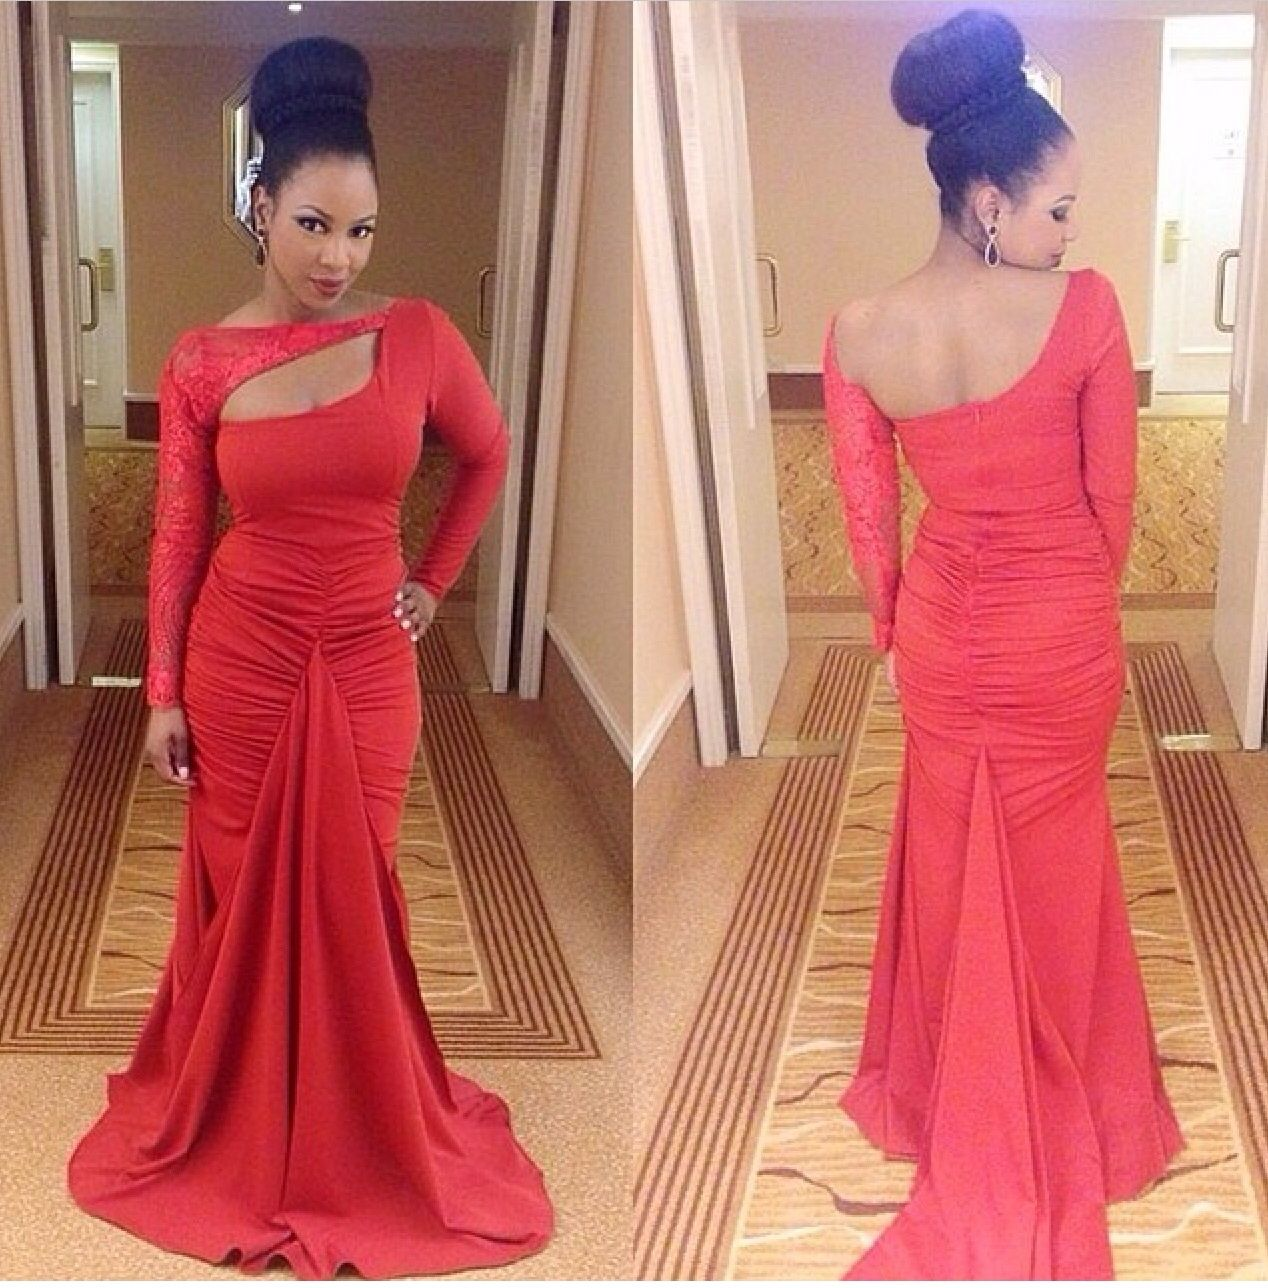 Pin by haja trye on haja pinterest plush red gowns and drop